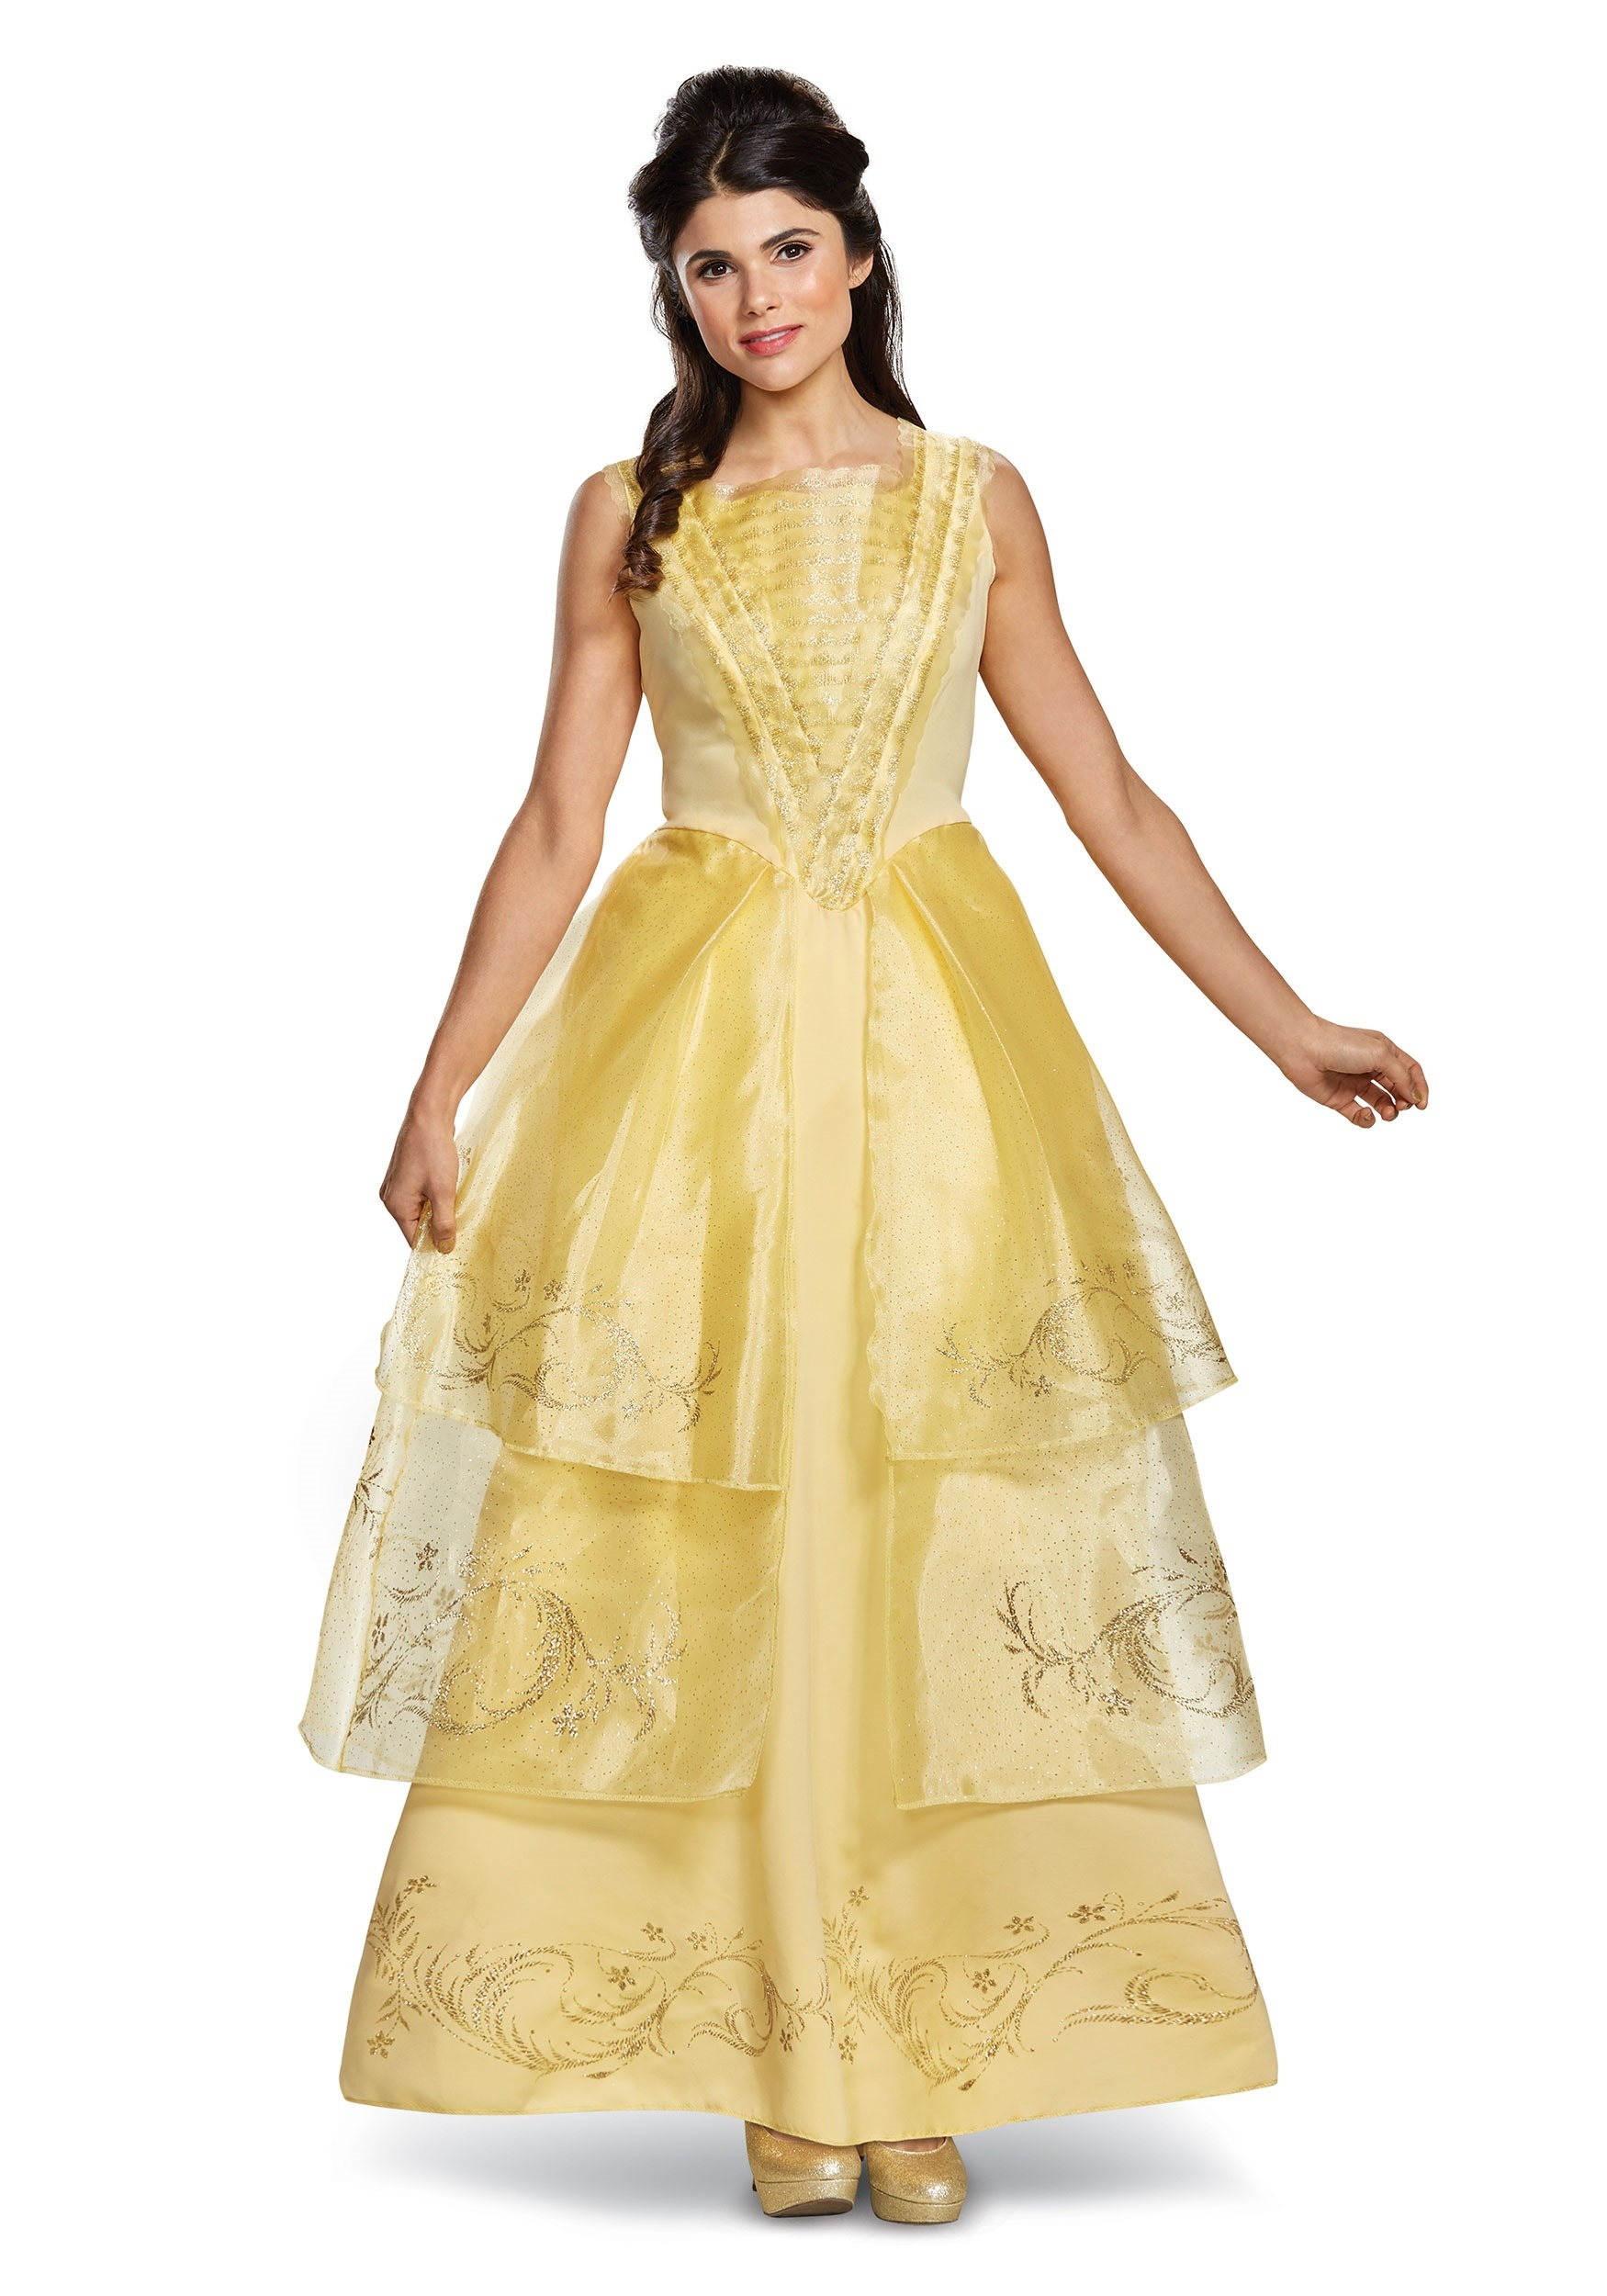 Disney Princess Costumes - Disney Costume